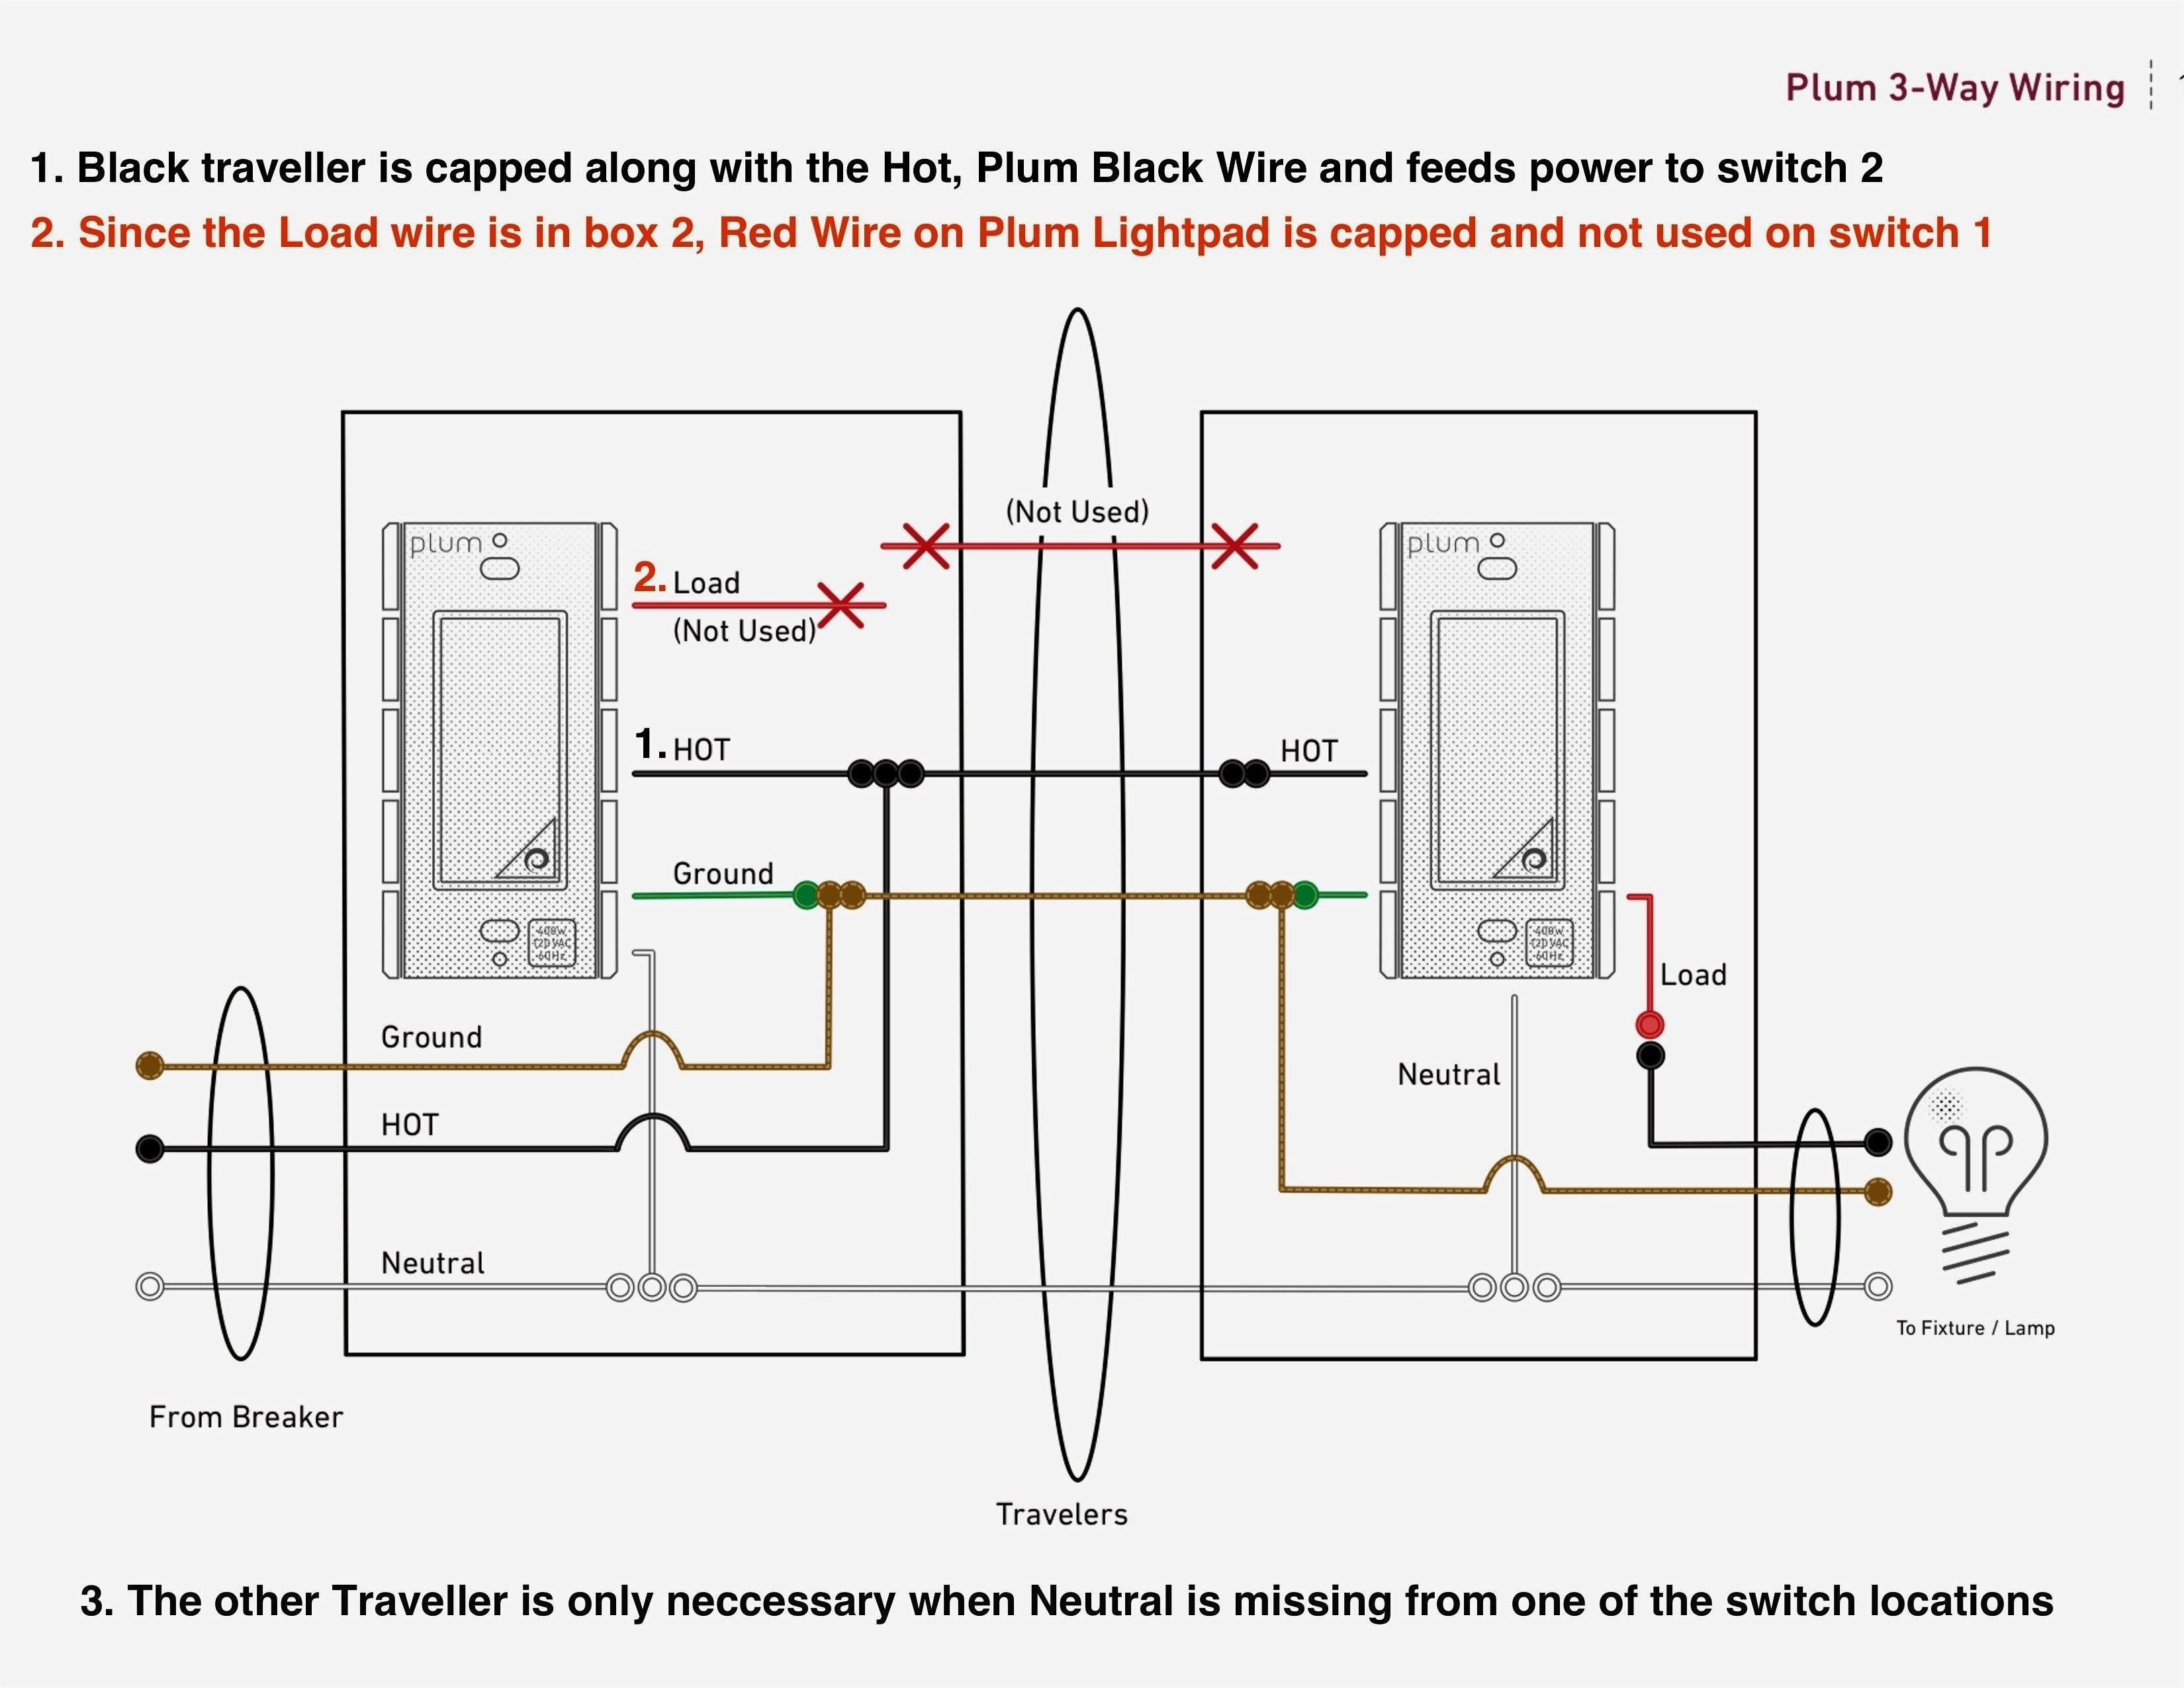 lutron 3 way dimmer switch wiring diagram Collection-Wiring Diagram for Lutron Lighting New Dimming Switch Wiring Diagram Luxury Lutron 3 Way Dimmer Switch 5-i